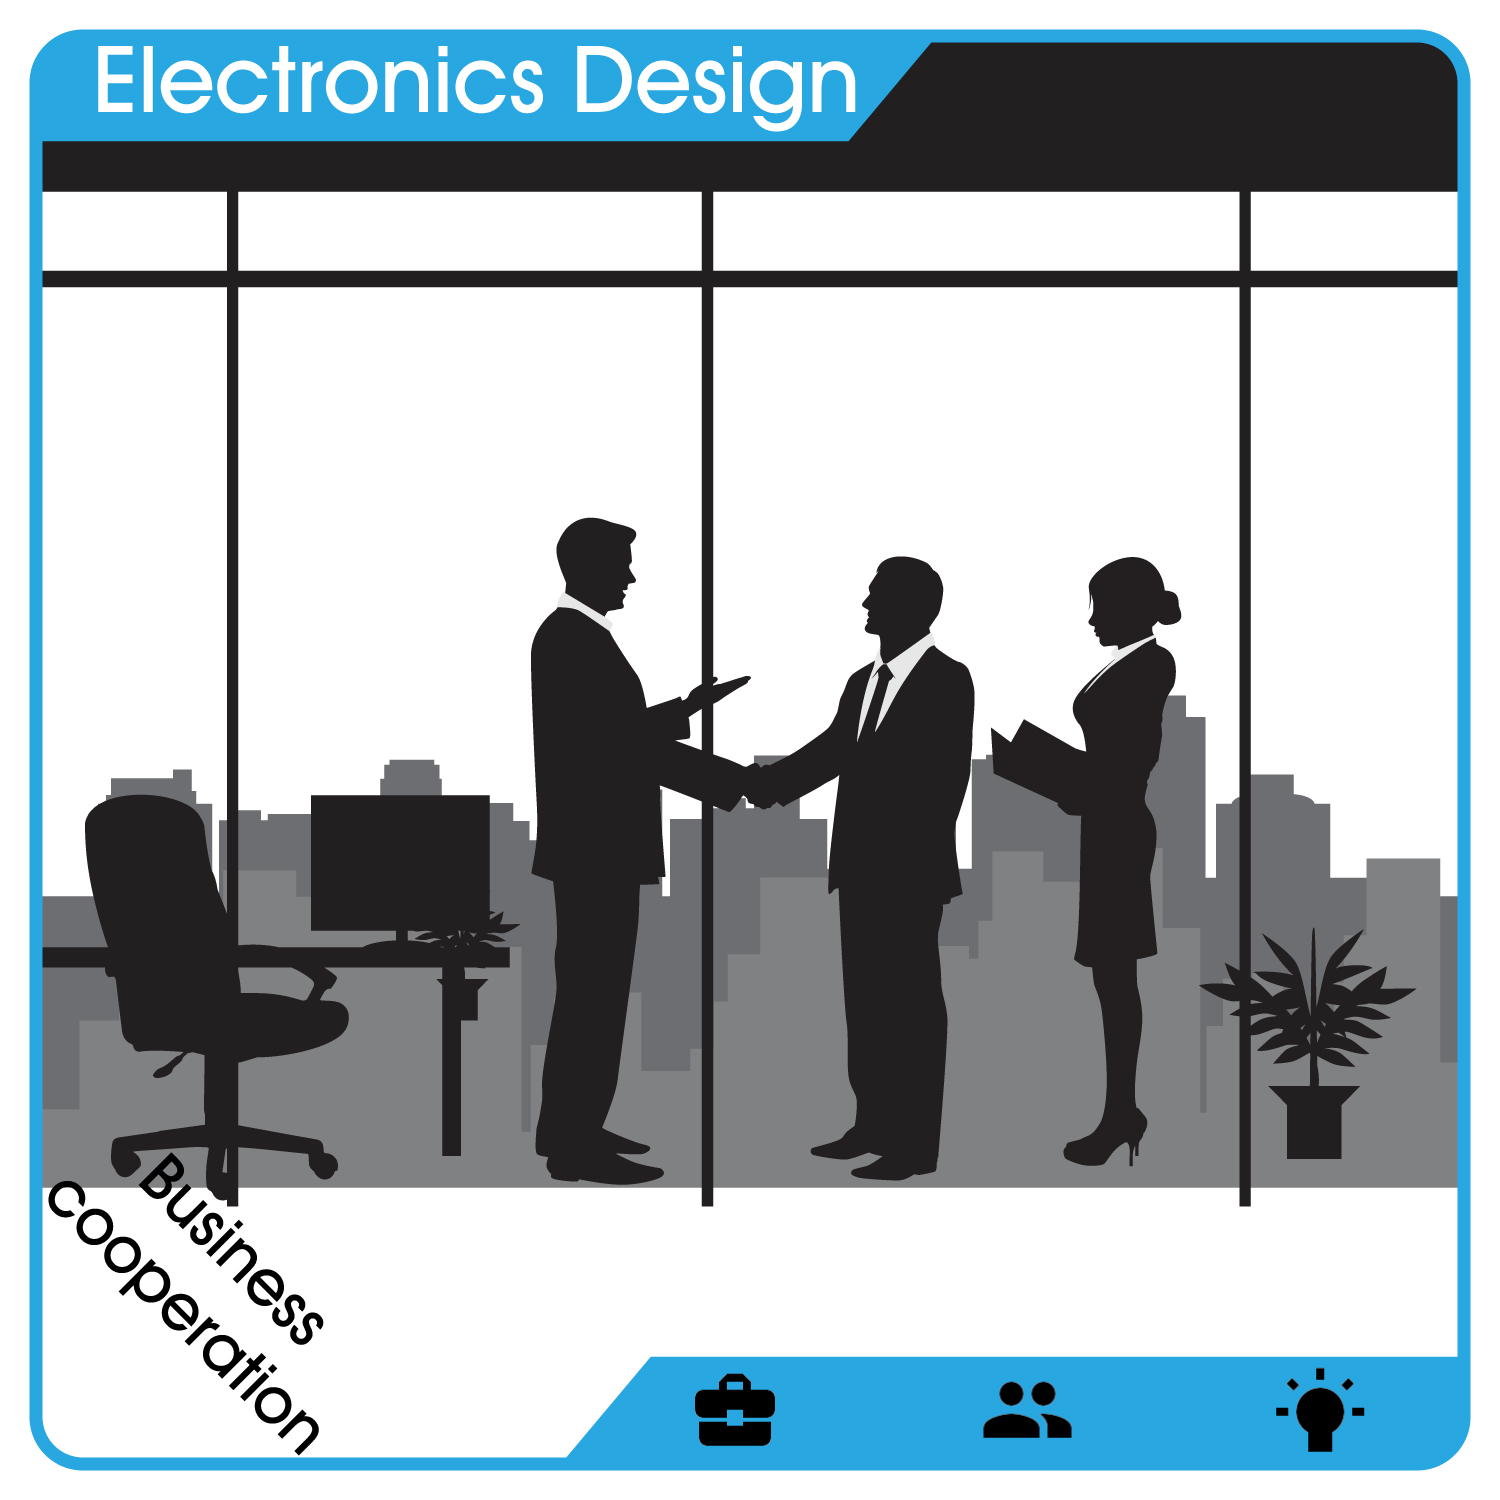 3G / 4G wireless custom electronic design